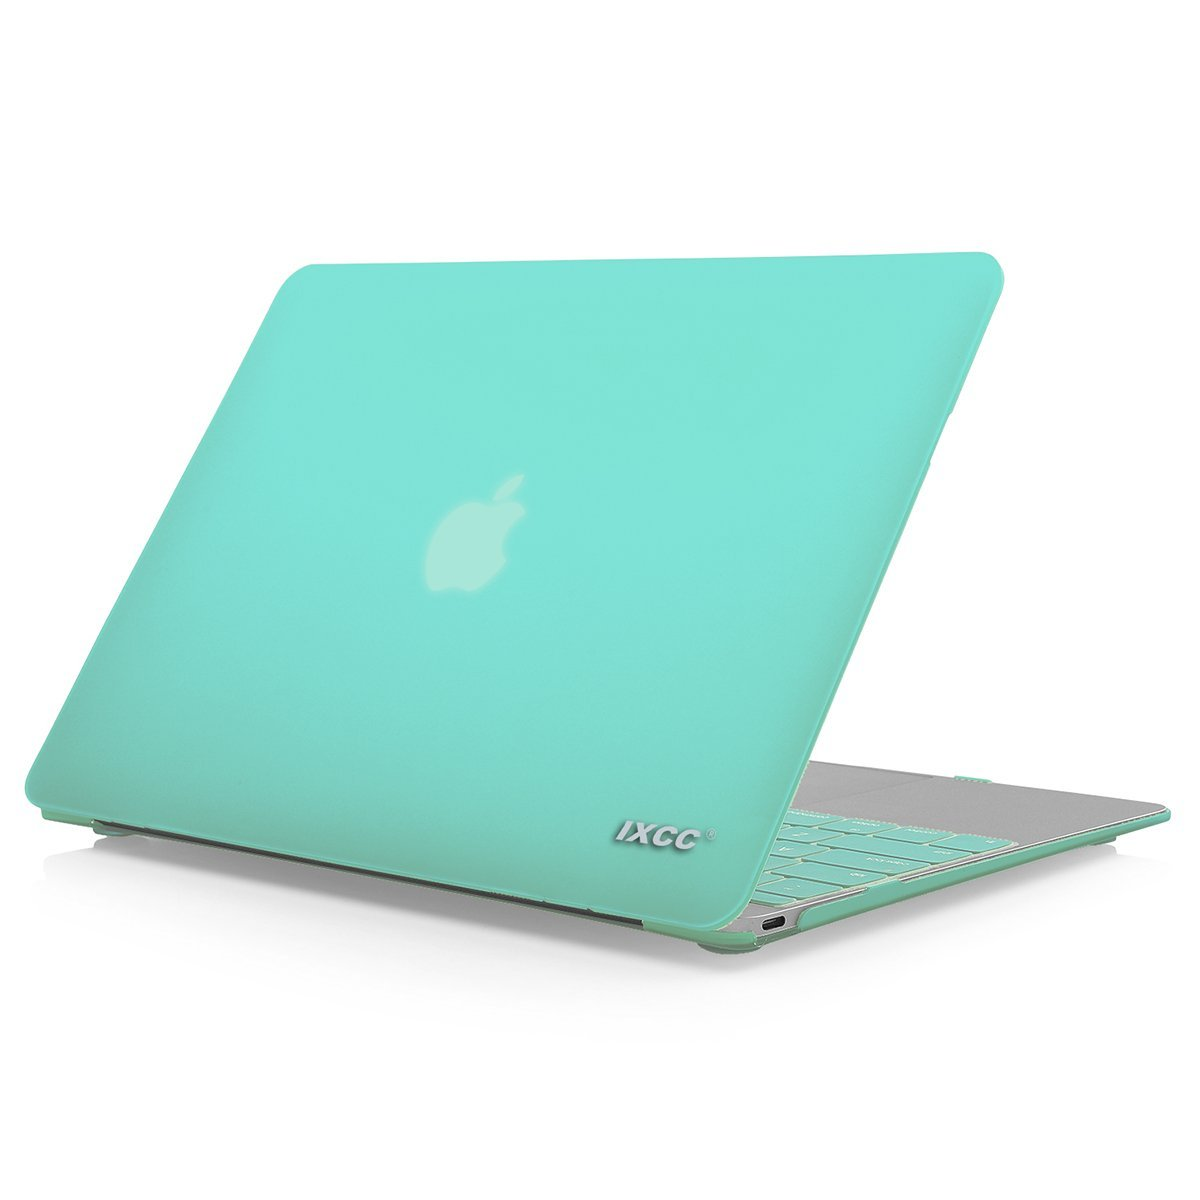 iXCC Apple MacBook 12-inch with Retina Display Rubberized Hard Shell Protective Case with Keyboard Cover [Model: A1534]- Green